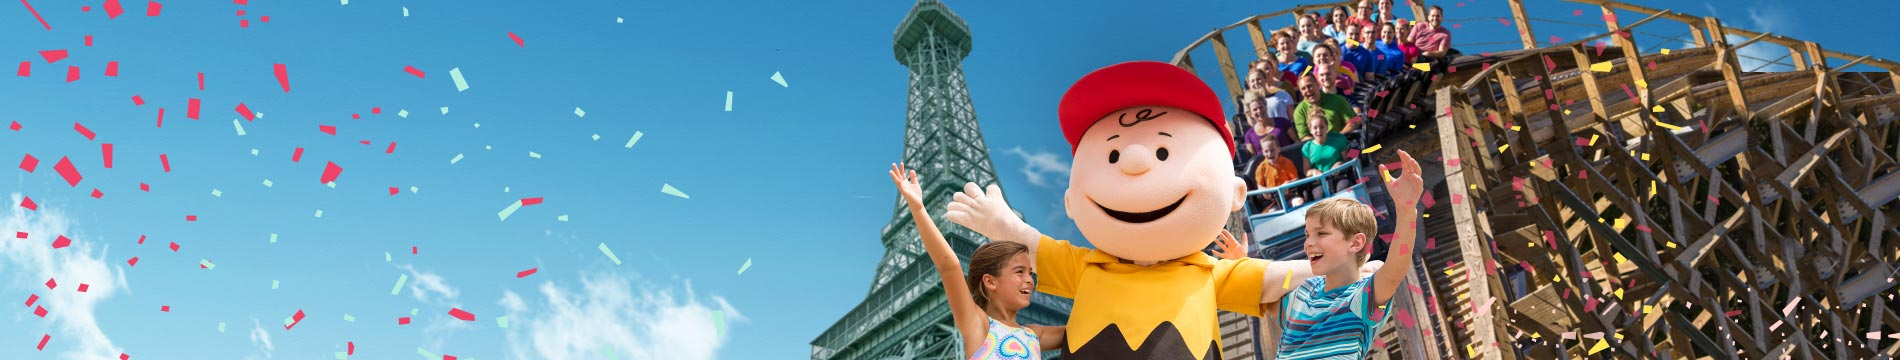 Exclusive PEANUTS Party for Gold & Platinum Passholders